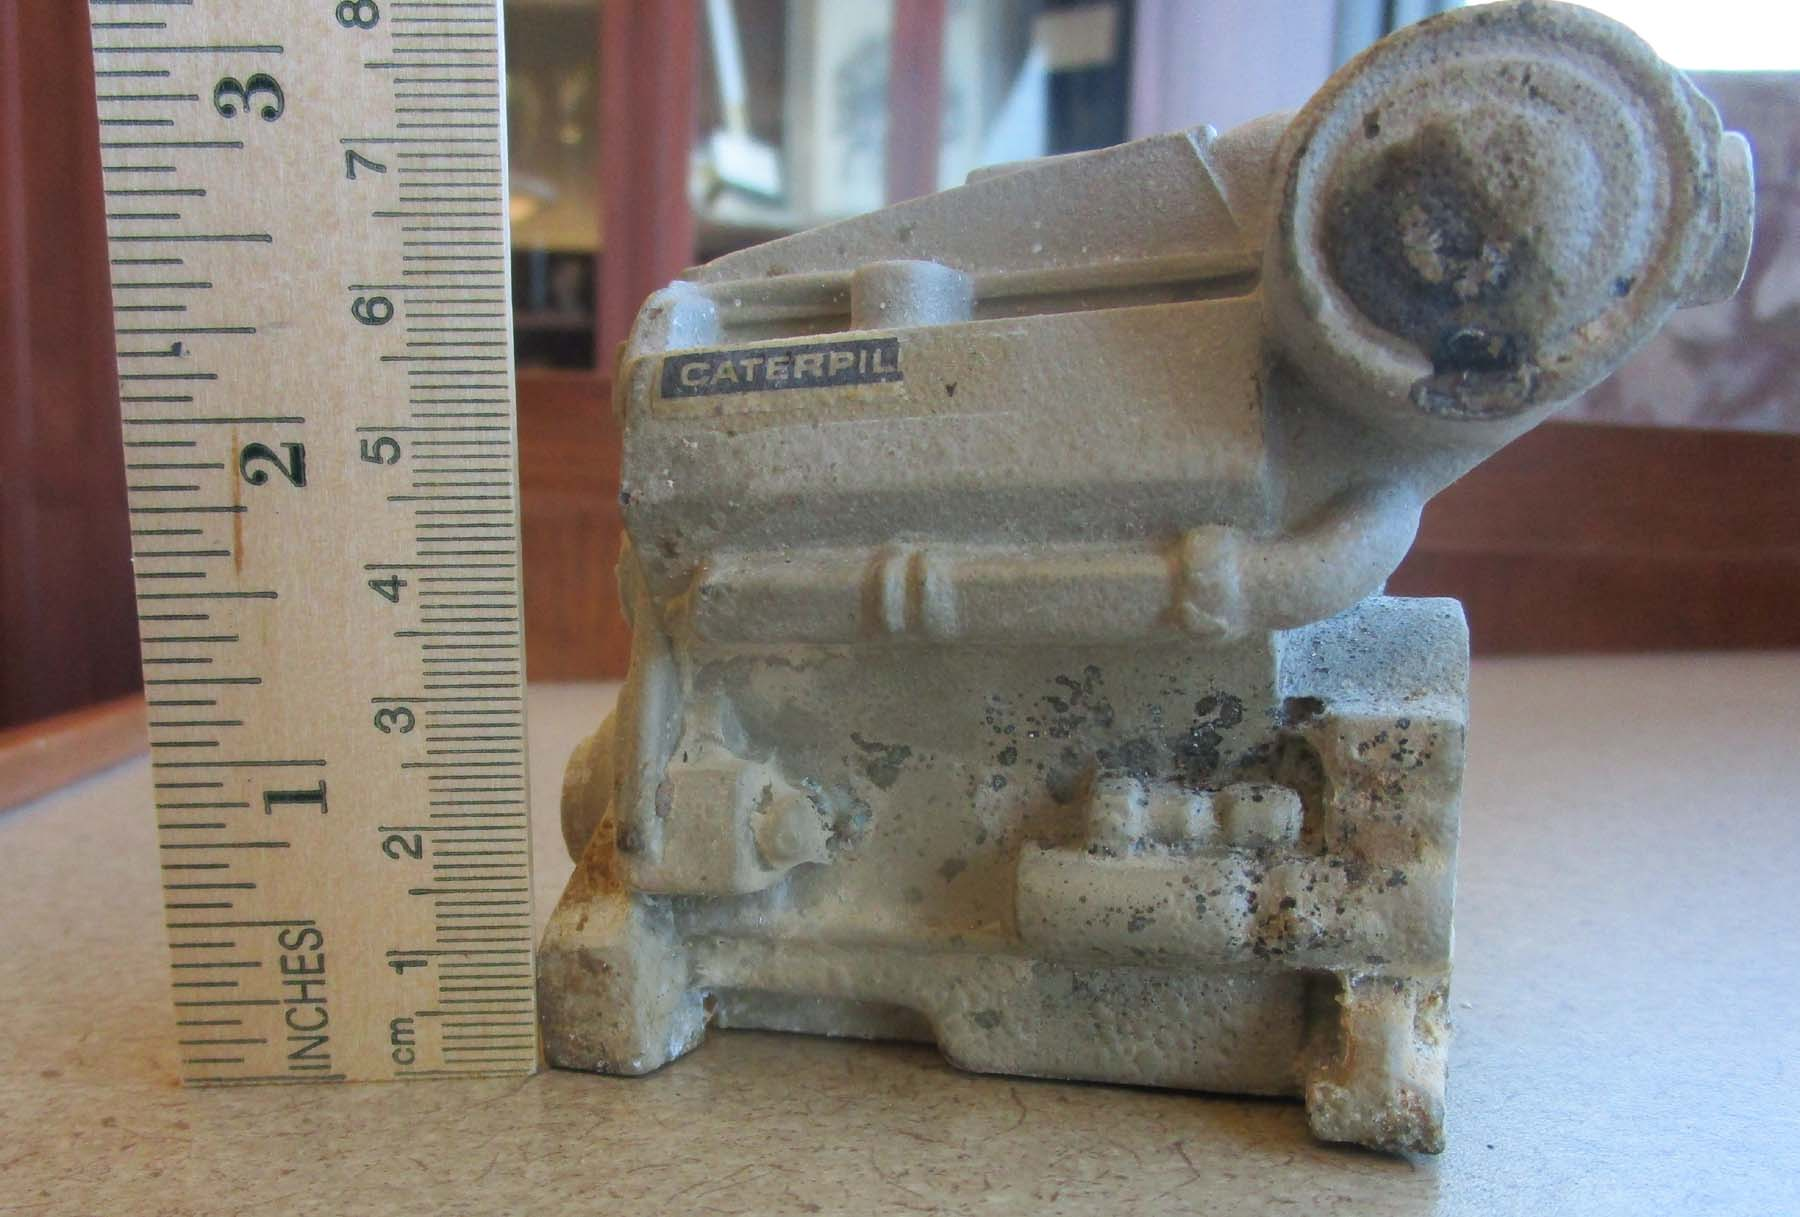 Caterpillar engine in miniature